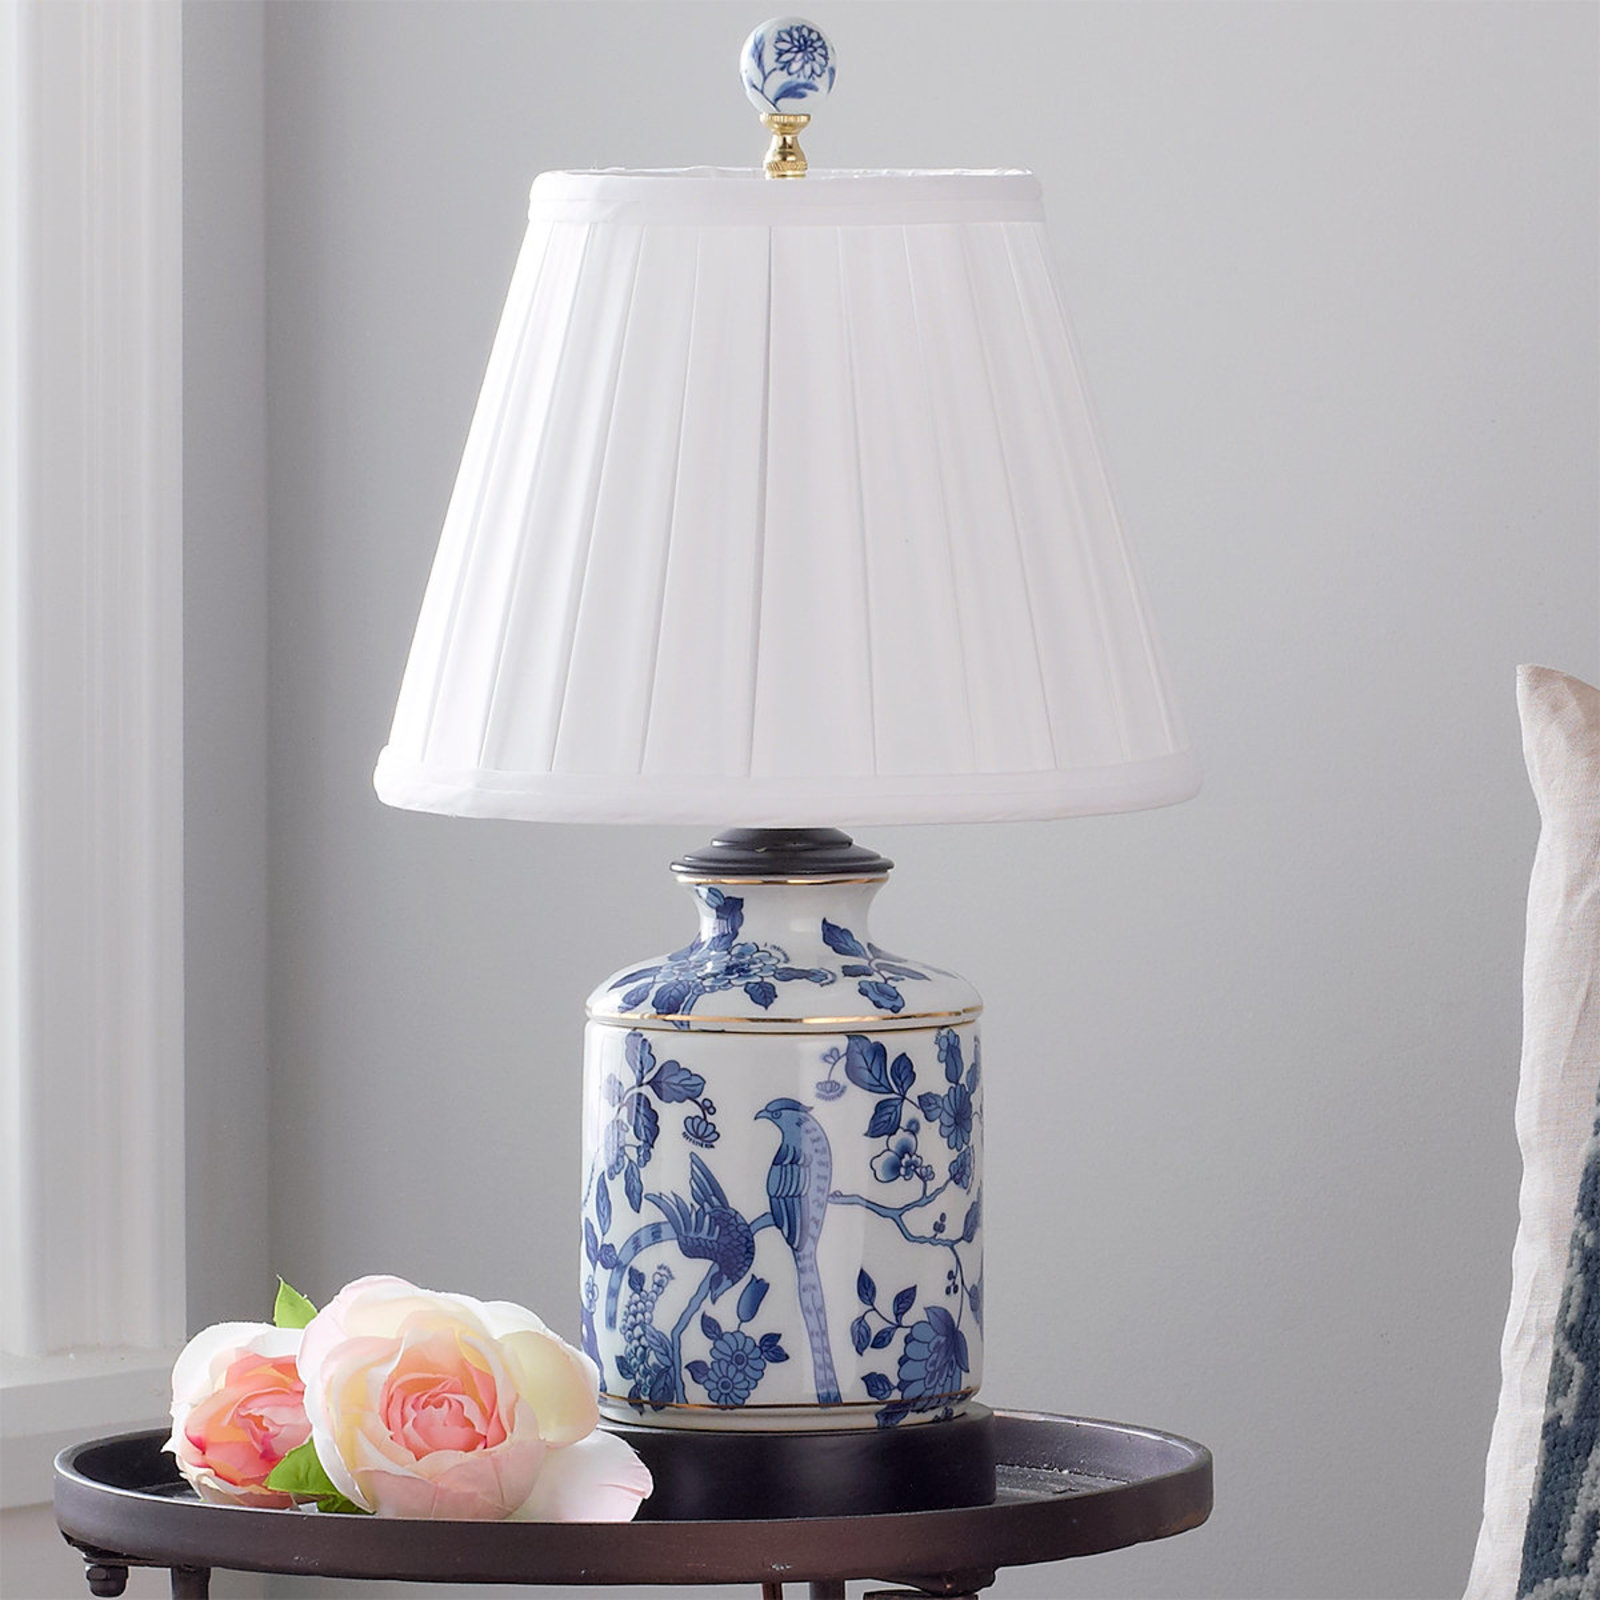 blue and white traditional mini table lamp shades light porcelain jar oriental accent lamps dining retro furniture home decor edmonton black steel legs pottery barn floor coffee